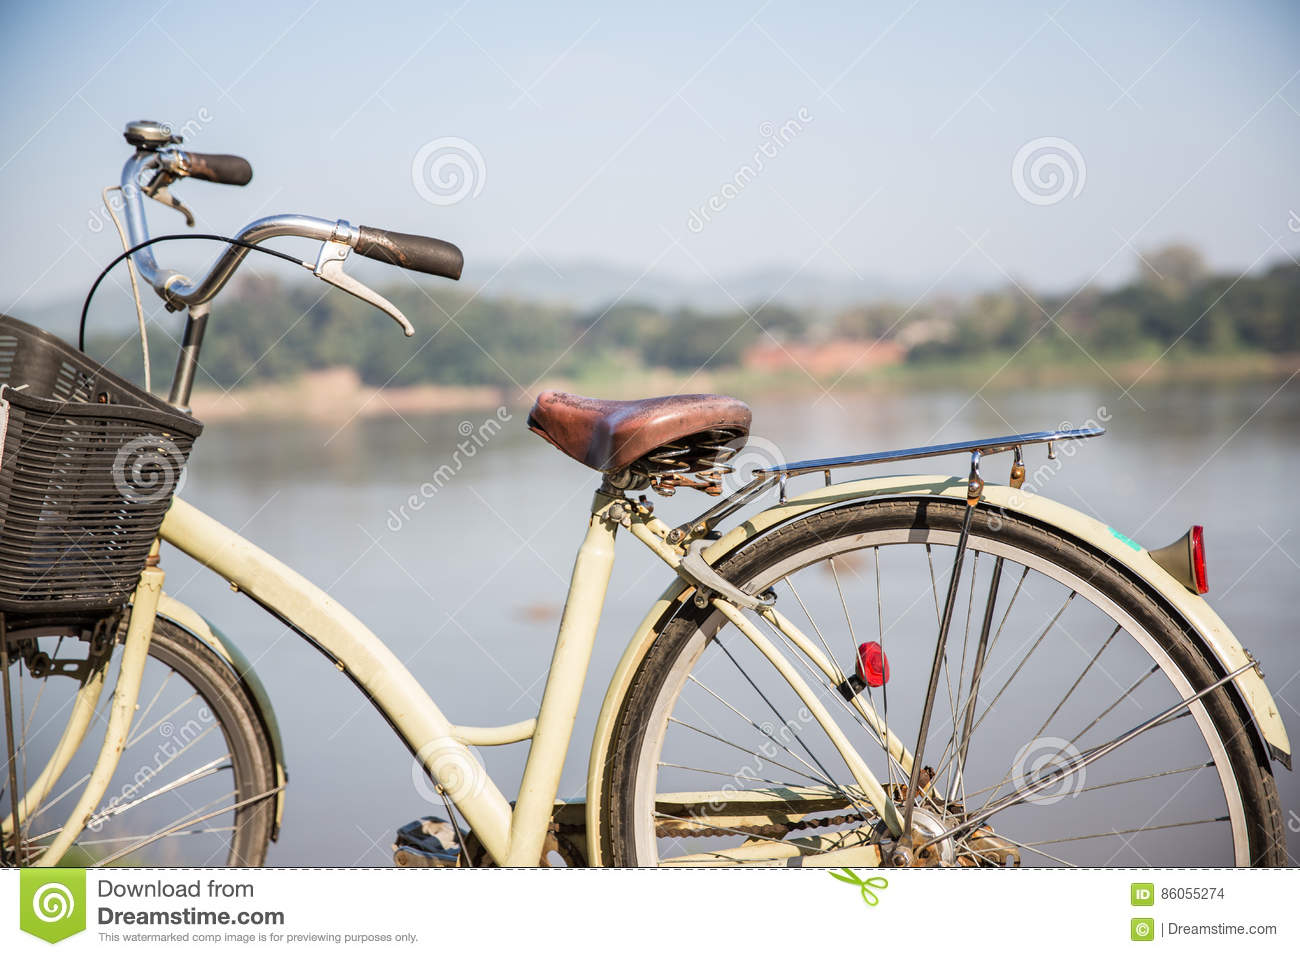 Vintage Bicycle, background is the river